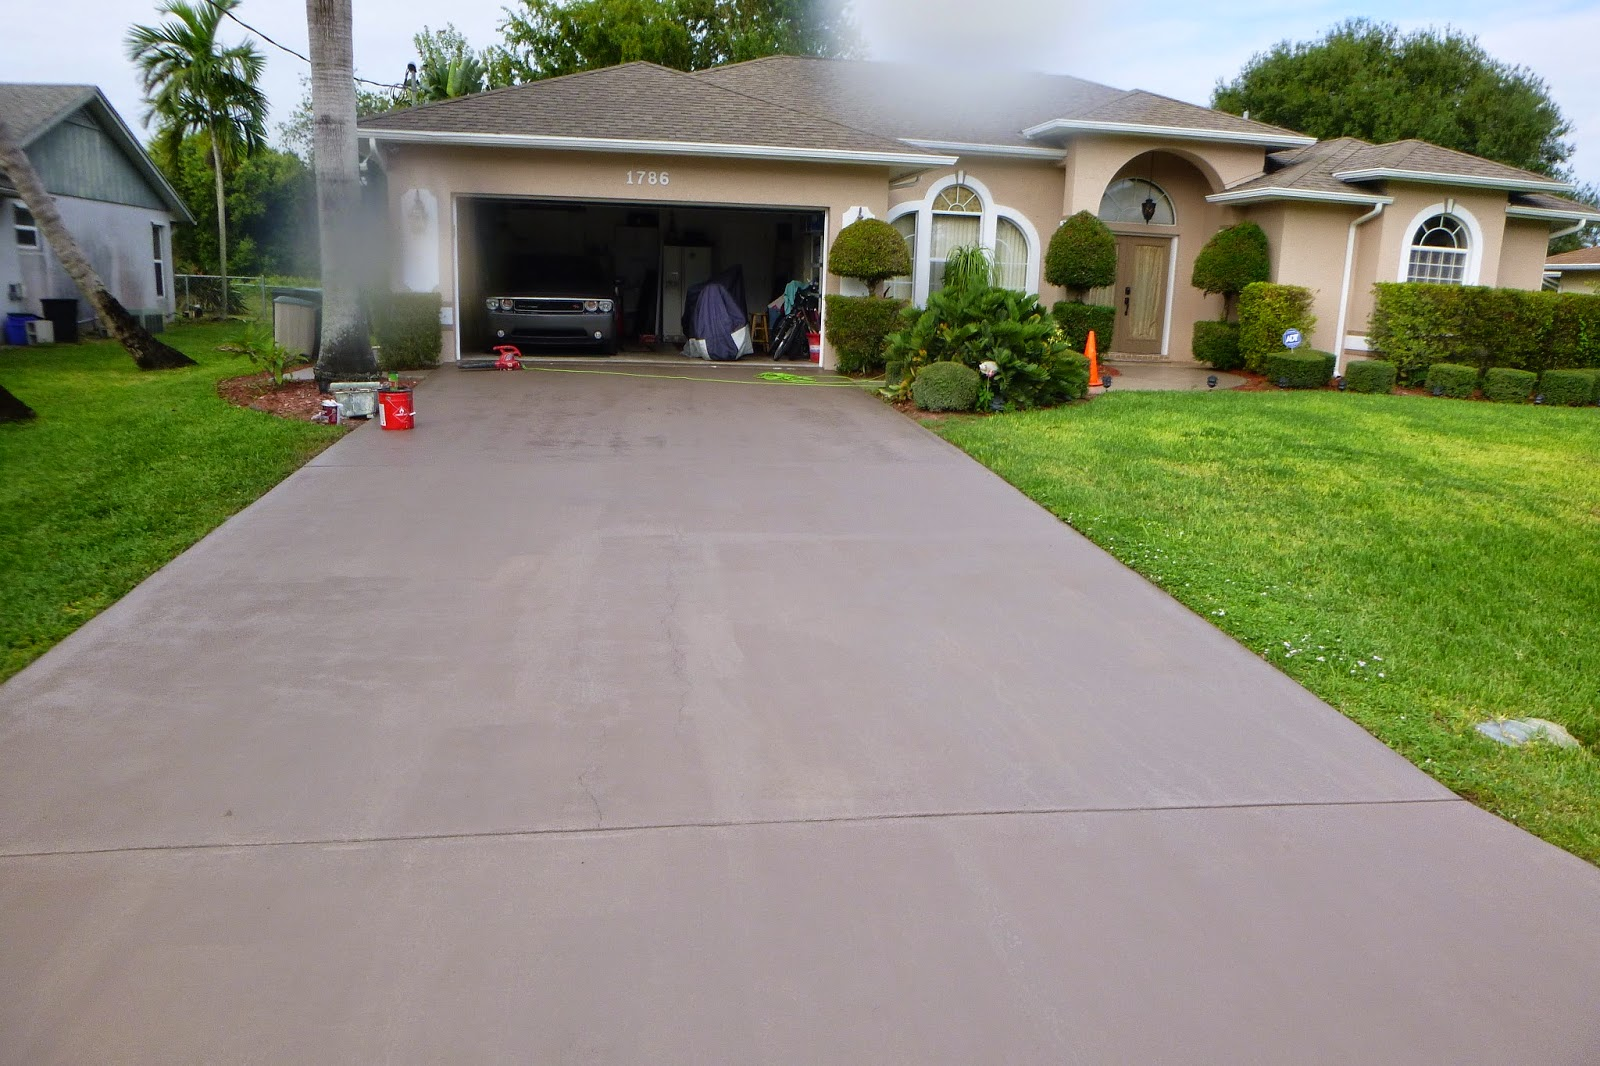 Painting Artists Corp Painting Company Port St Lucie Fl 772 626 7159